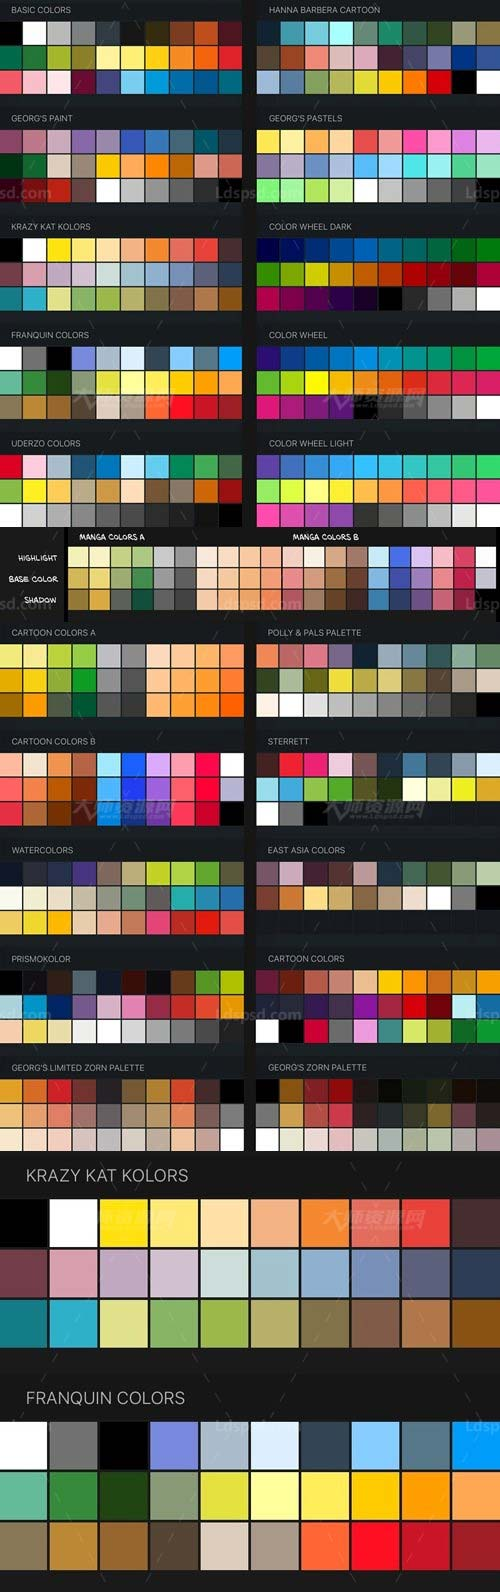 Procreate Color Swatches: 22 Palettes for Painting and Drawing,极品Procreate色板-22套绘画专用色彩